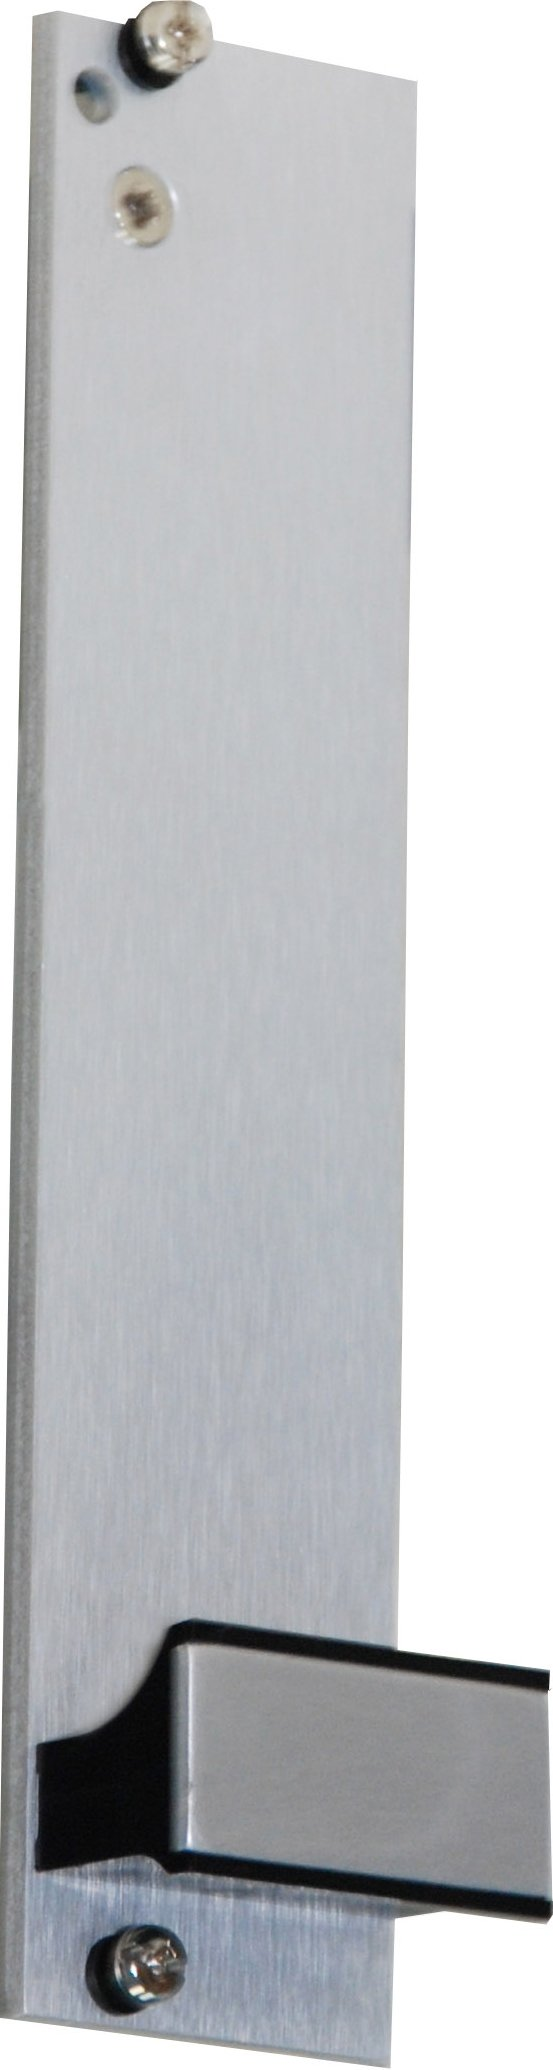 Audio Technologies Inc. BP100-1 Blank Panel for System 10K (replaces Amp Module) BP100-1